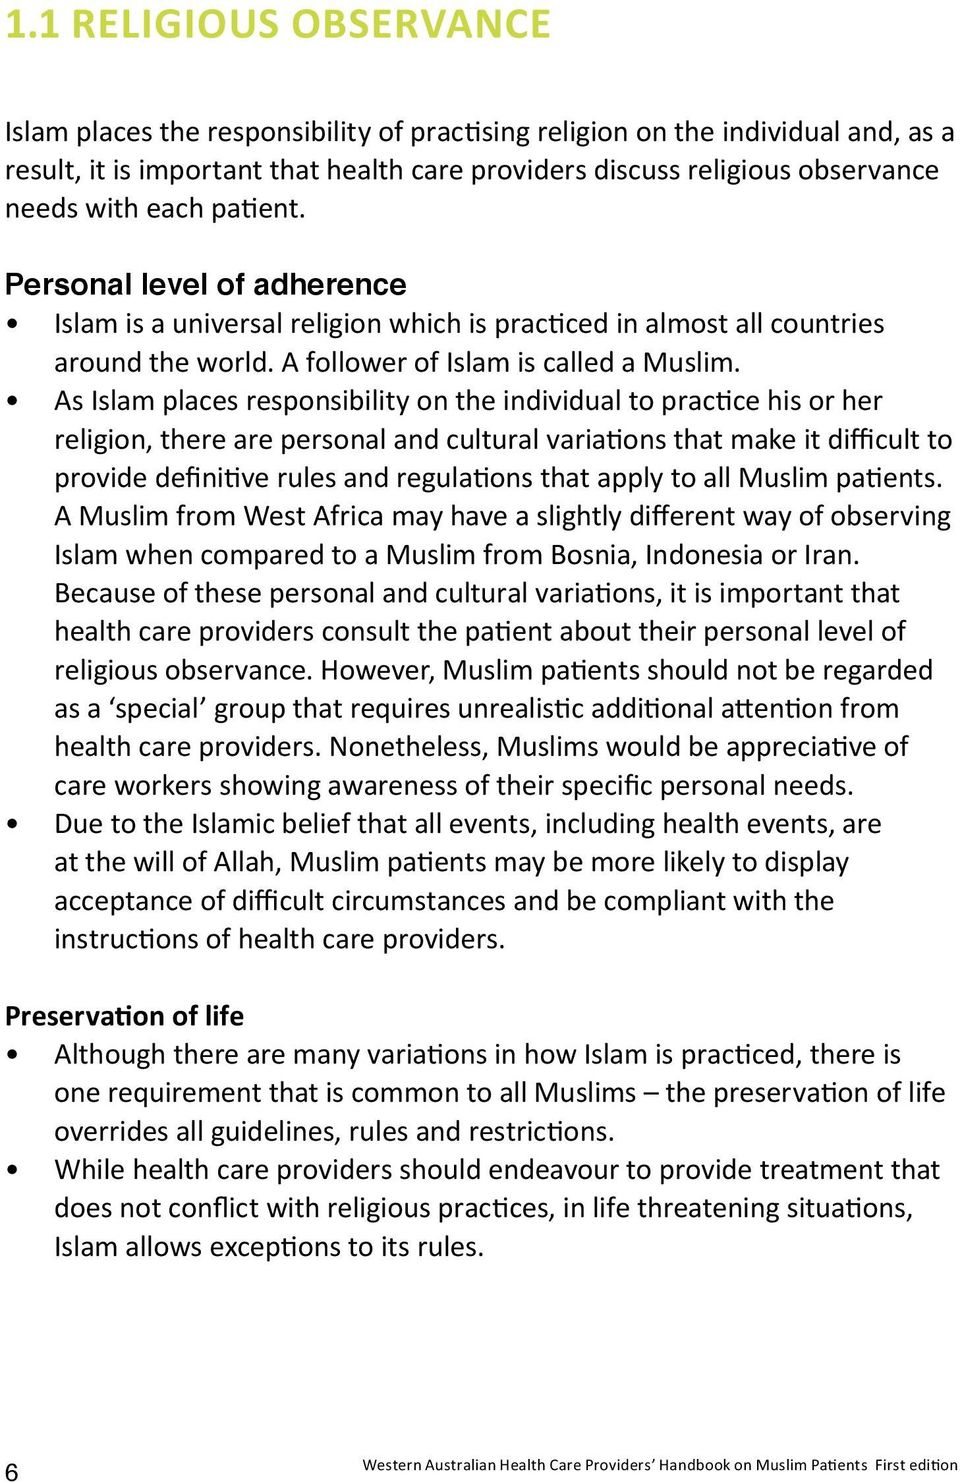 As Islam places responsibility on the individual to practice his or her religion, there are personal and cultural variations that make it difficult to provide definitive rules and regulations that